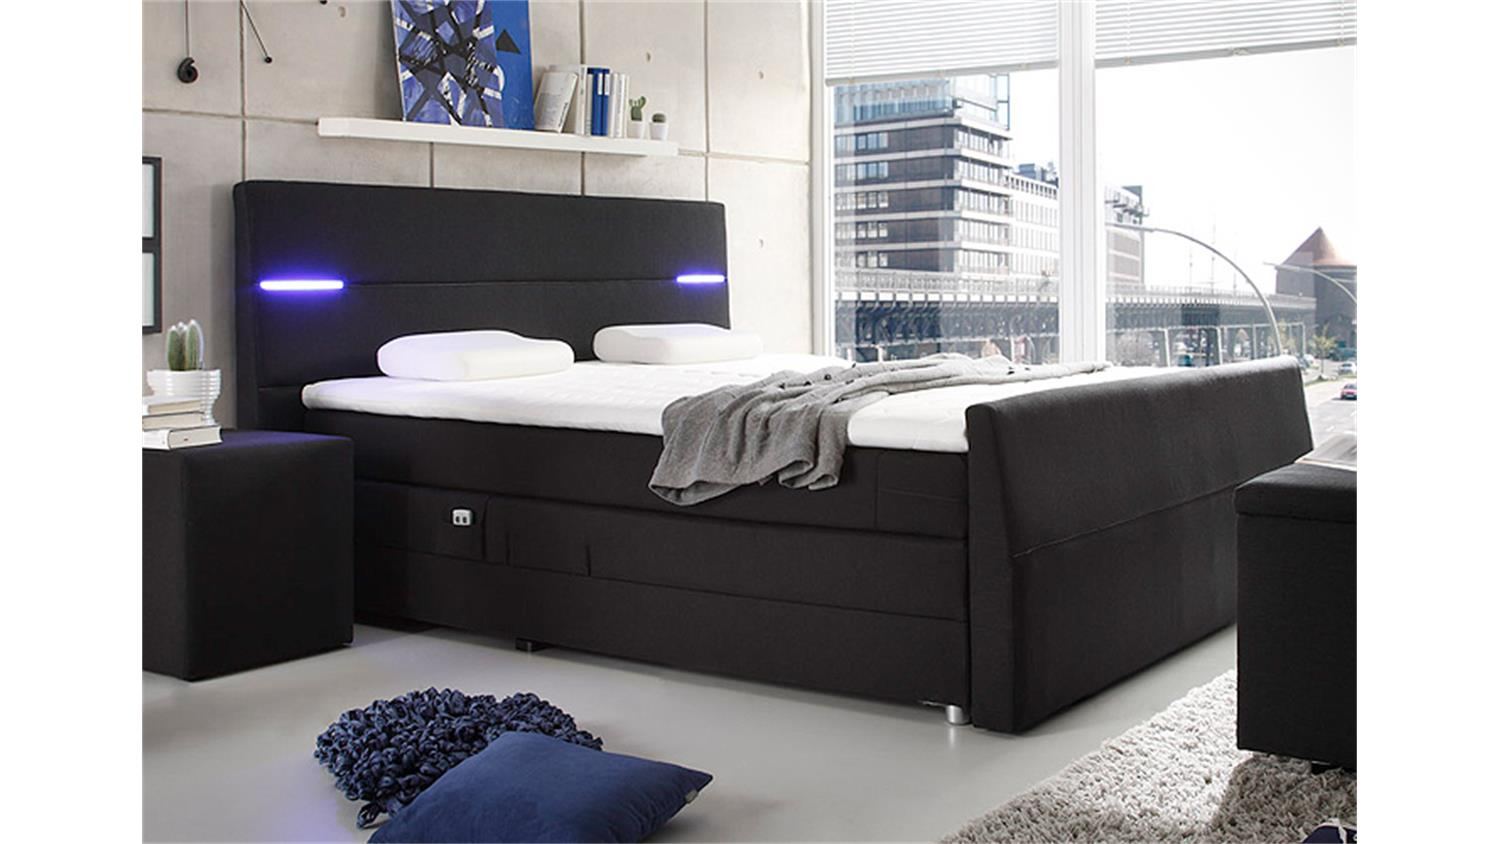 boxspringbett 140x200 mit motor innenarchitektur ger umiges boxspringbett mit elektromotor und. Black Bedroom Furniture Sets. Home Design Ideas